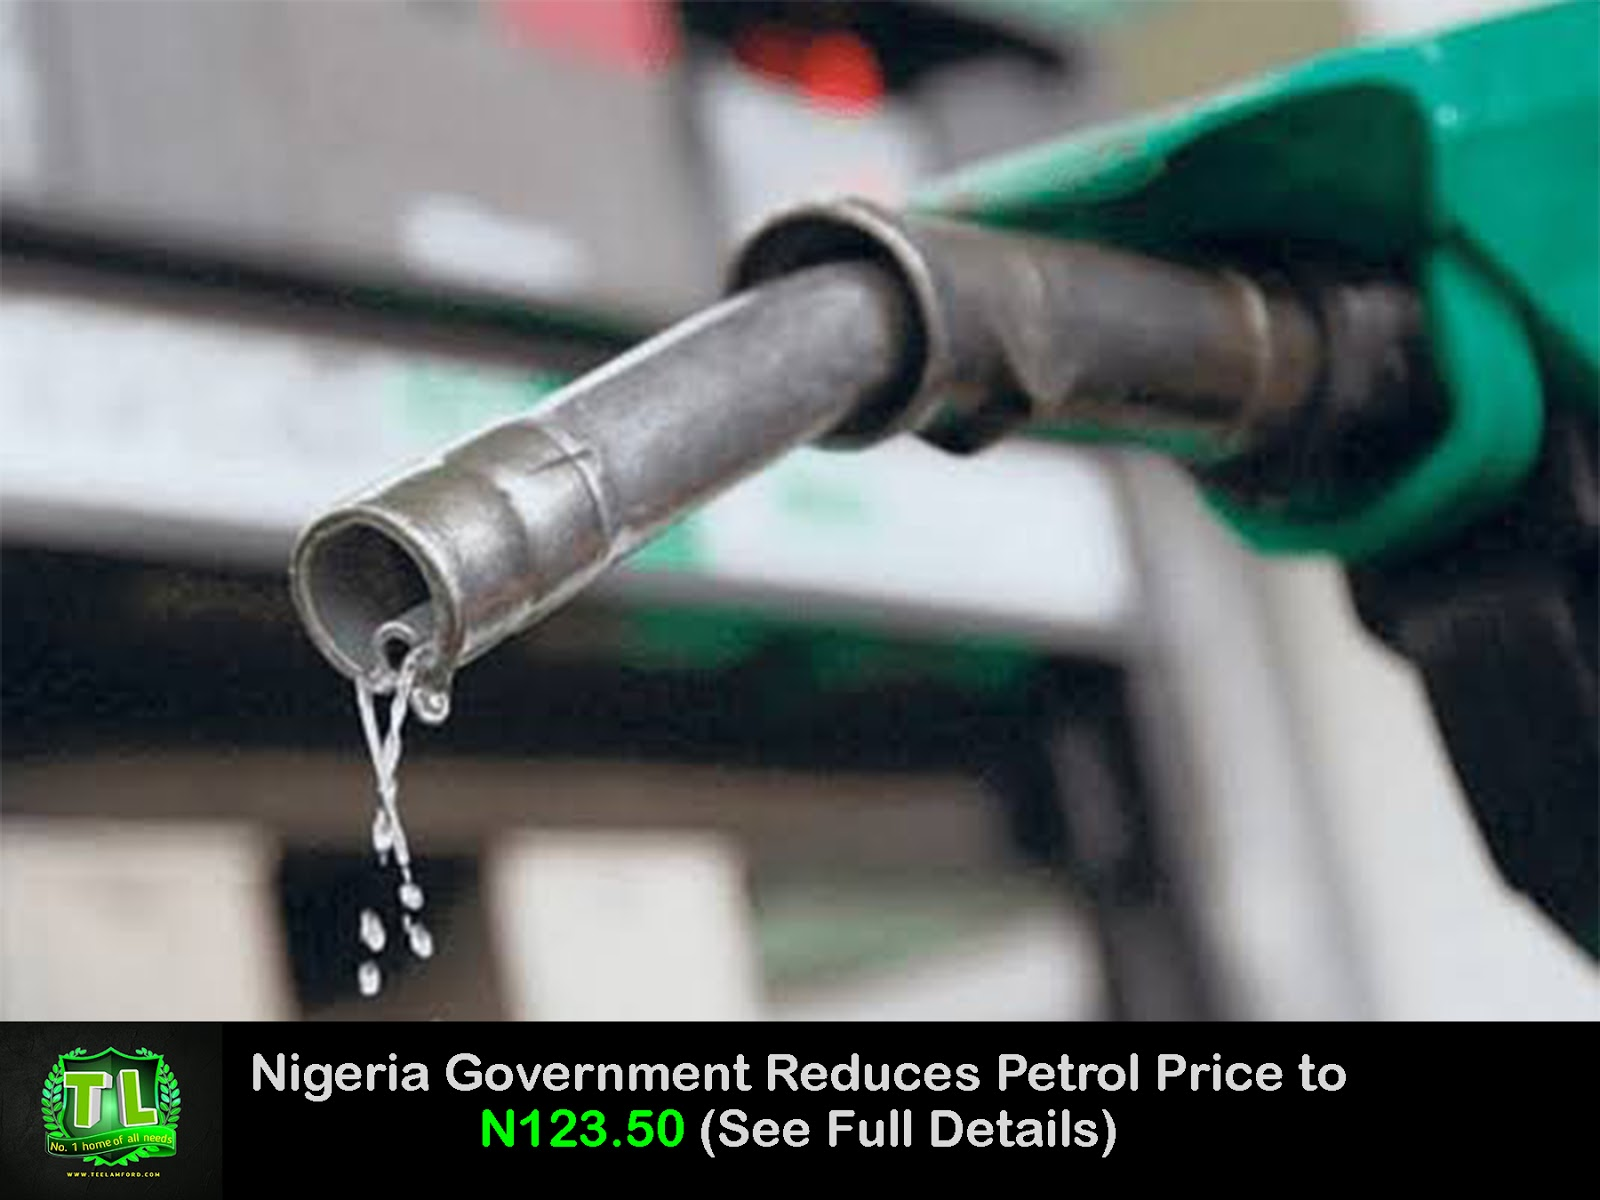 nigeria-government-reduces-petrol-price-to-n123.50-see-full-details